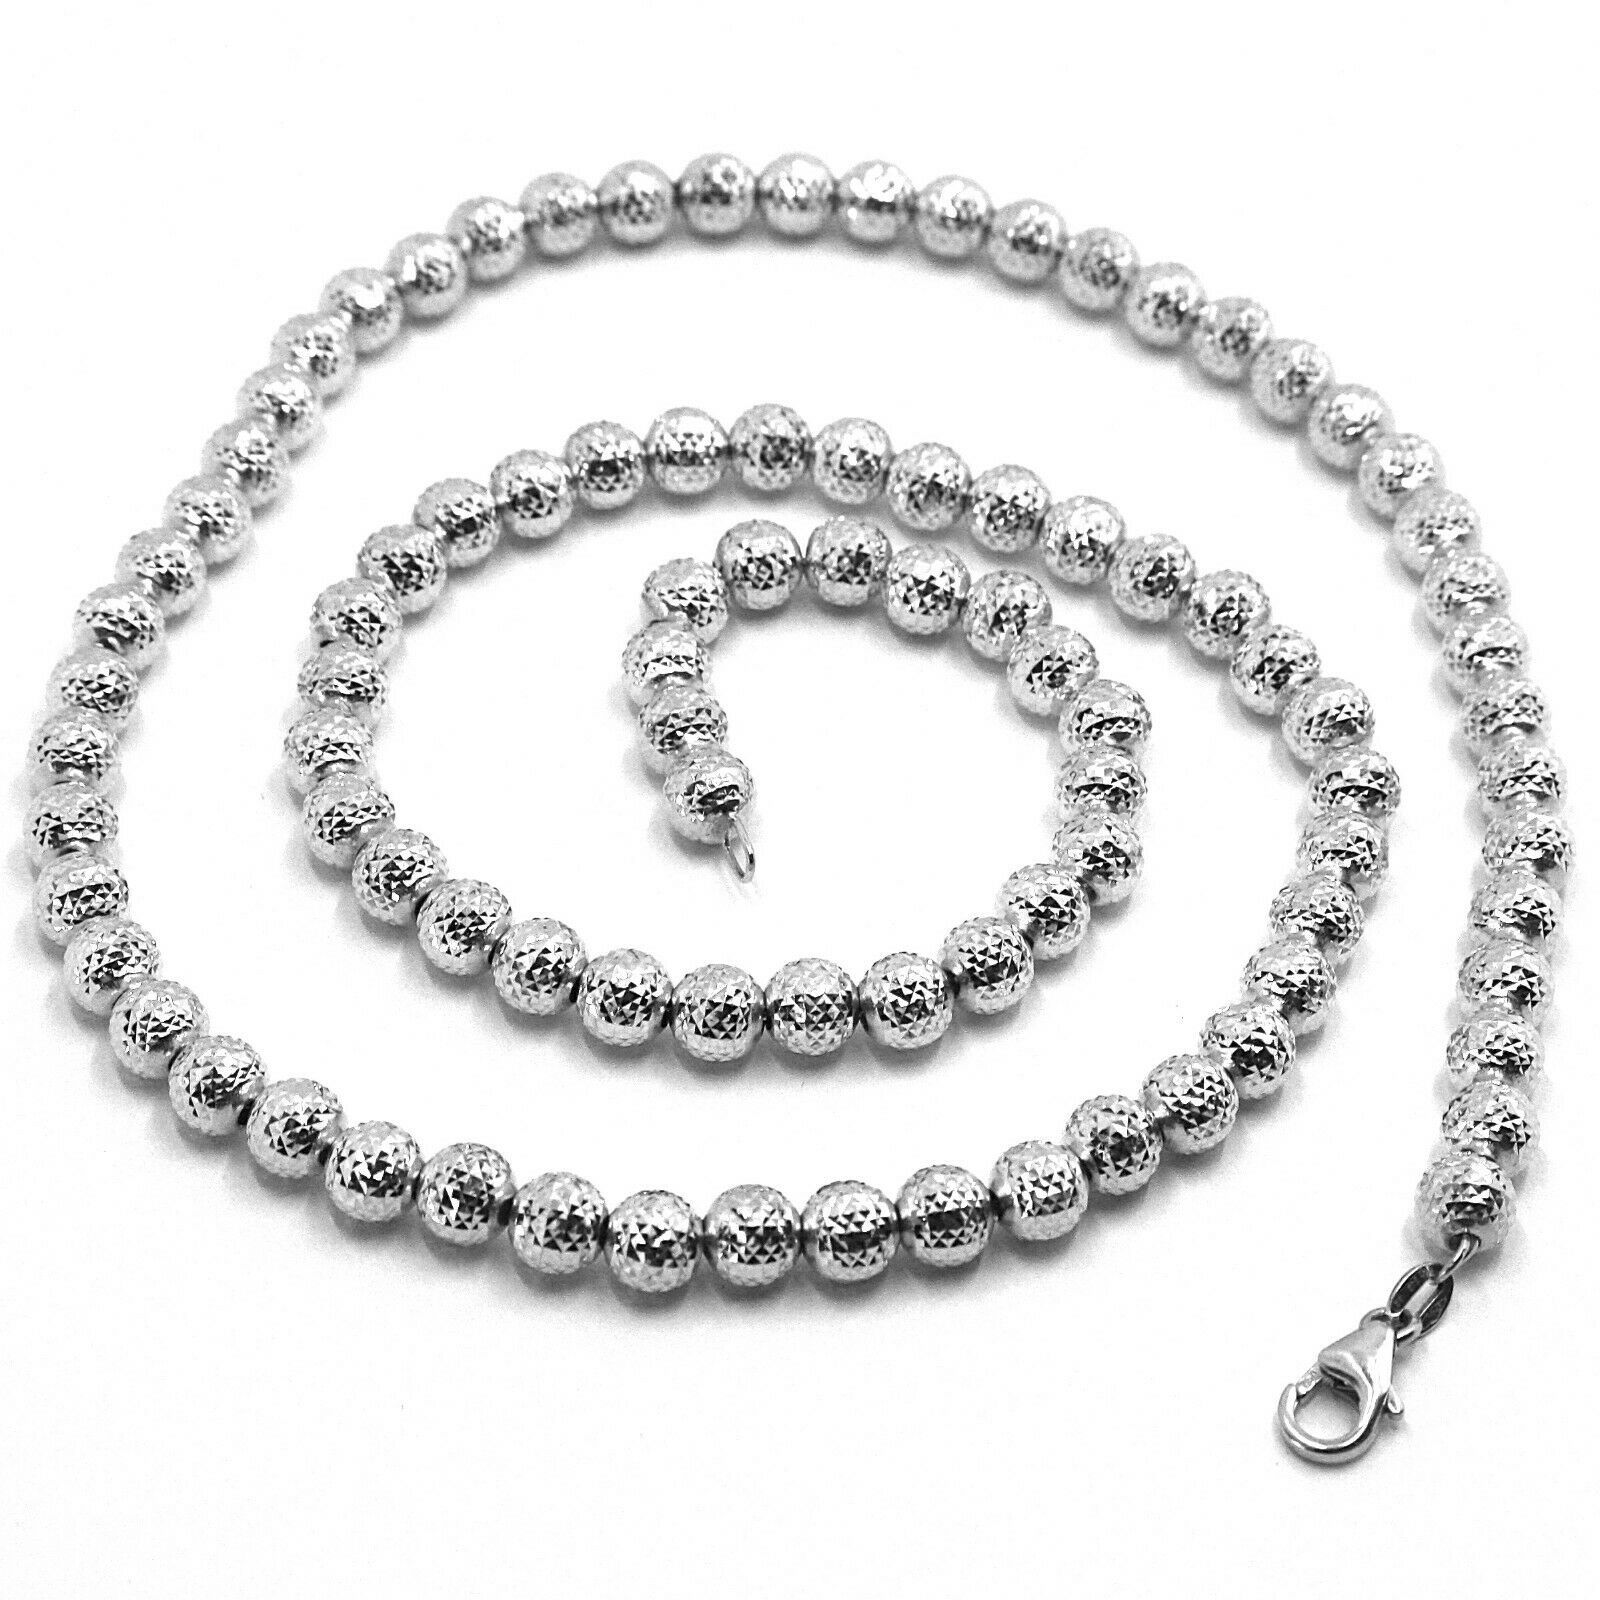 "18K WHITE GOLD CHAIN FINELY WORKED SPHERES 5 MM DIAMOND CUT, FACETED 16"", 40 CM"